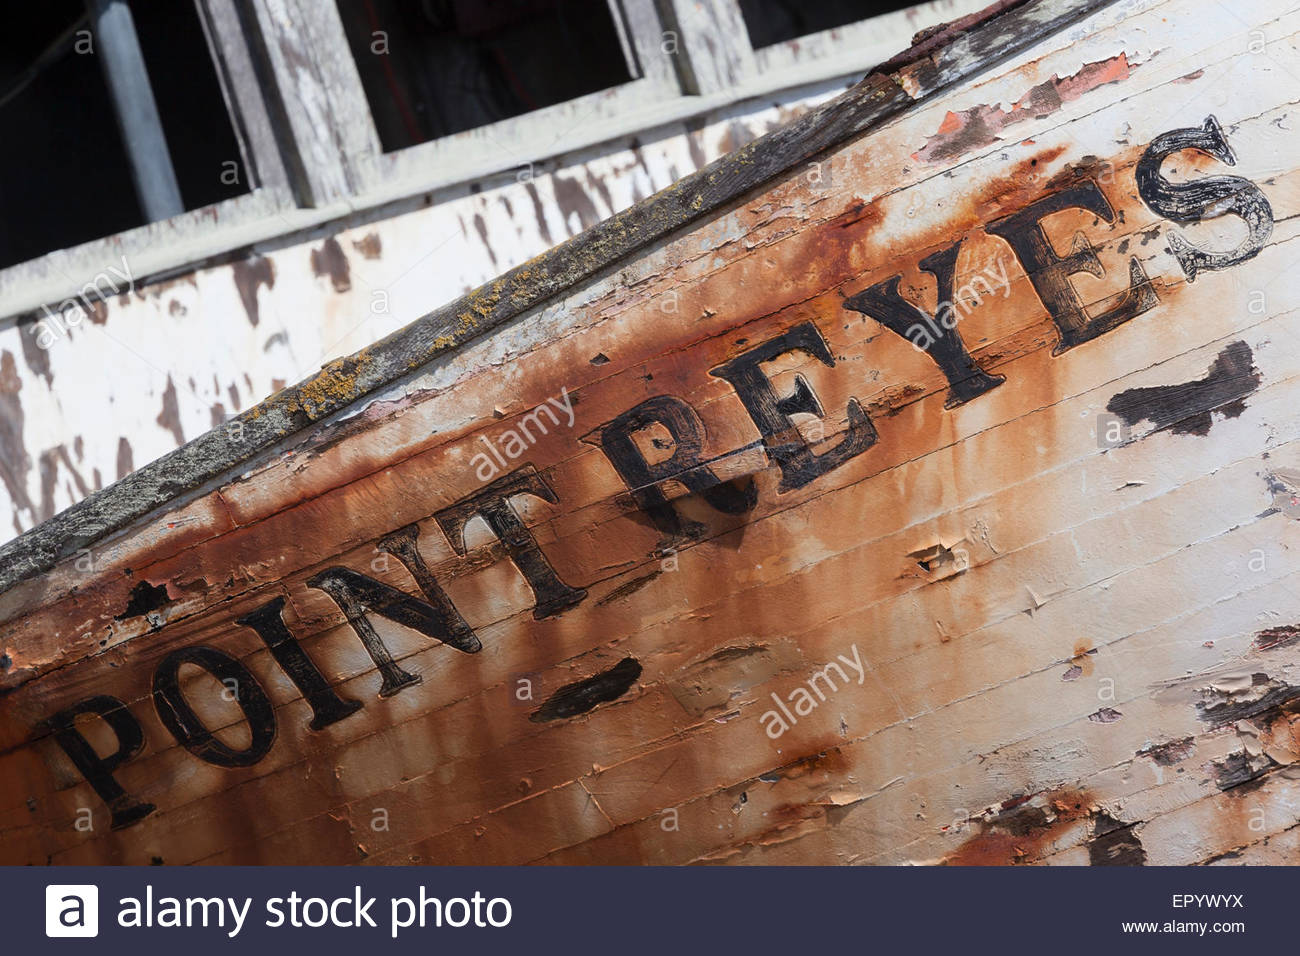 Point Reyes Shipwreck, Inverness, California - Stock Image